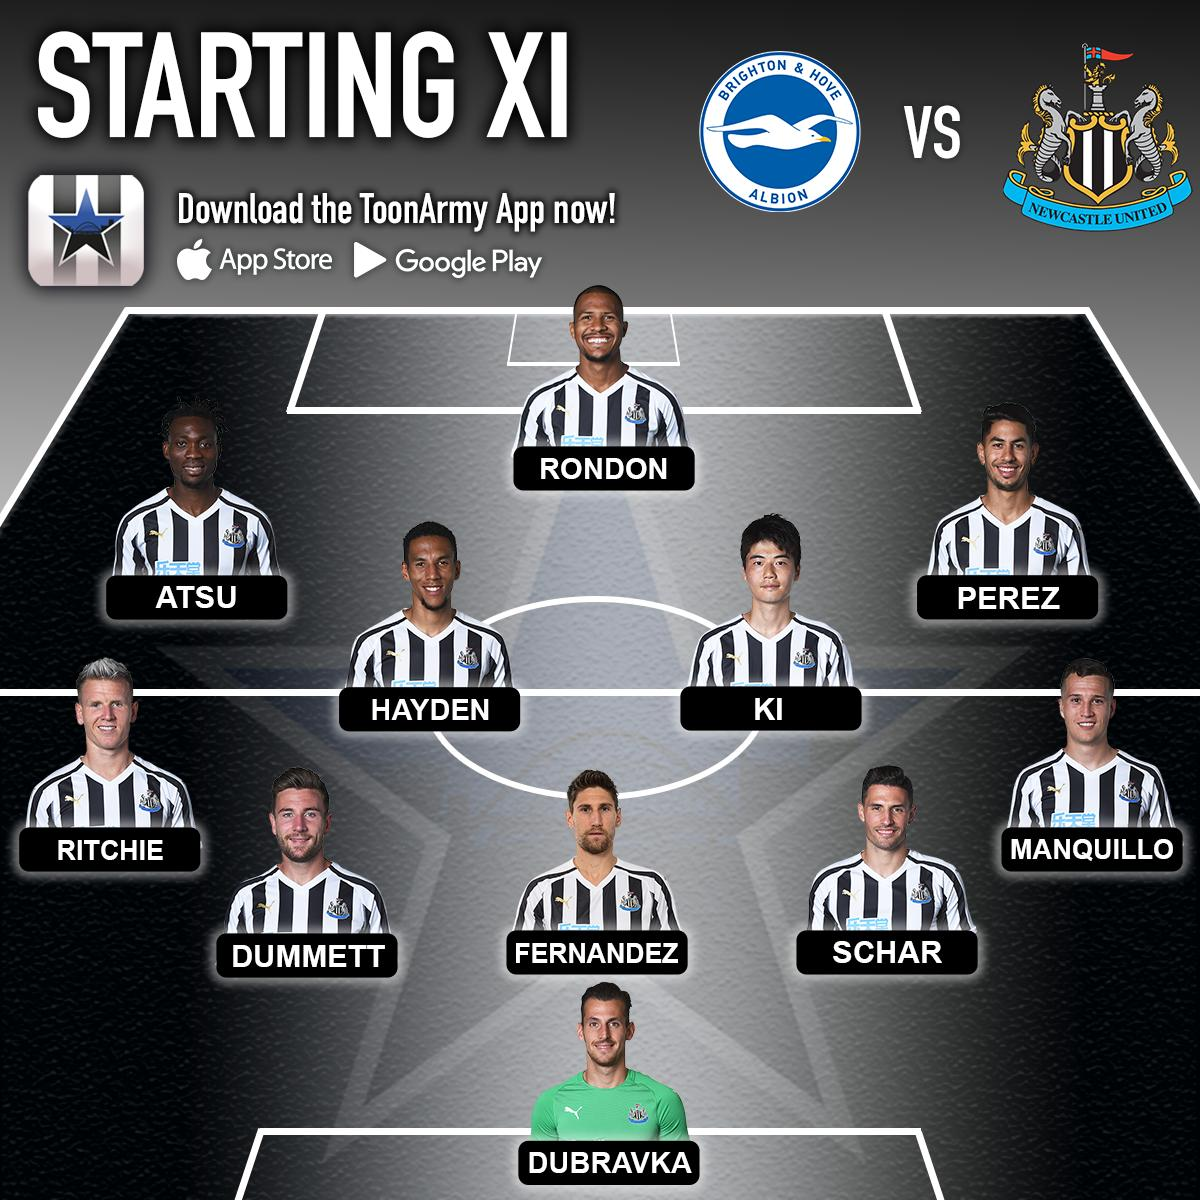 MY STARTING XI vs BRIGHTON 👇  Would you start Atsu for the injured Almiron? ⚫⚪ #NUFC #ToonArmy  🔁 for NO ❤ for YES